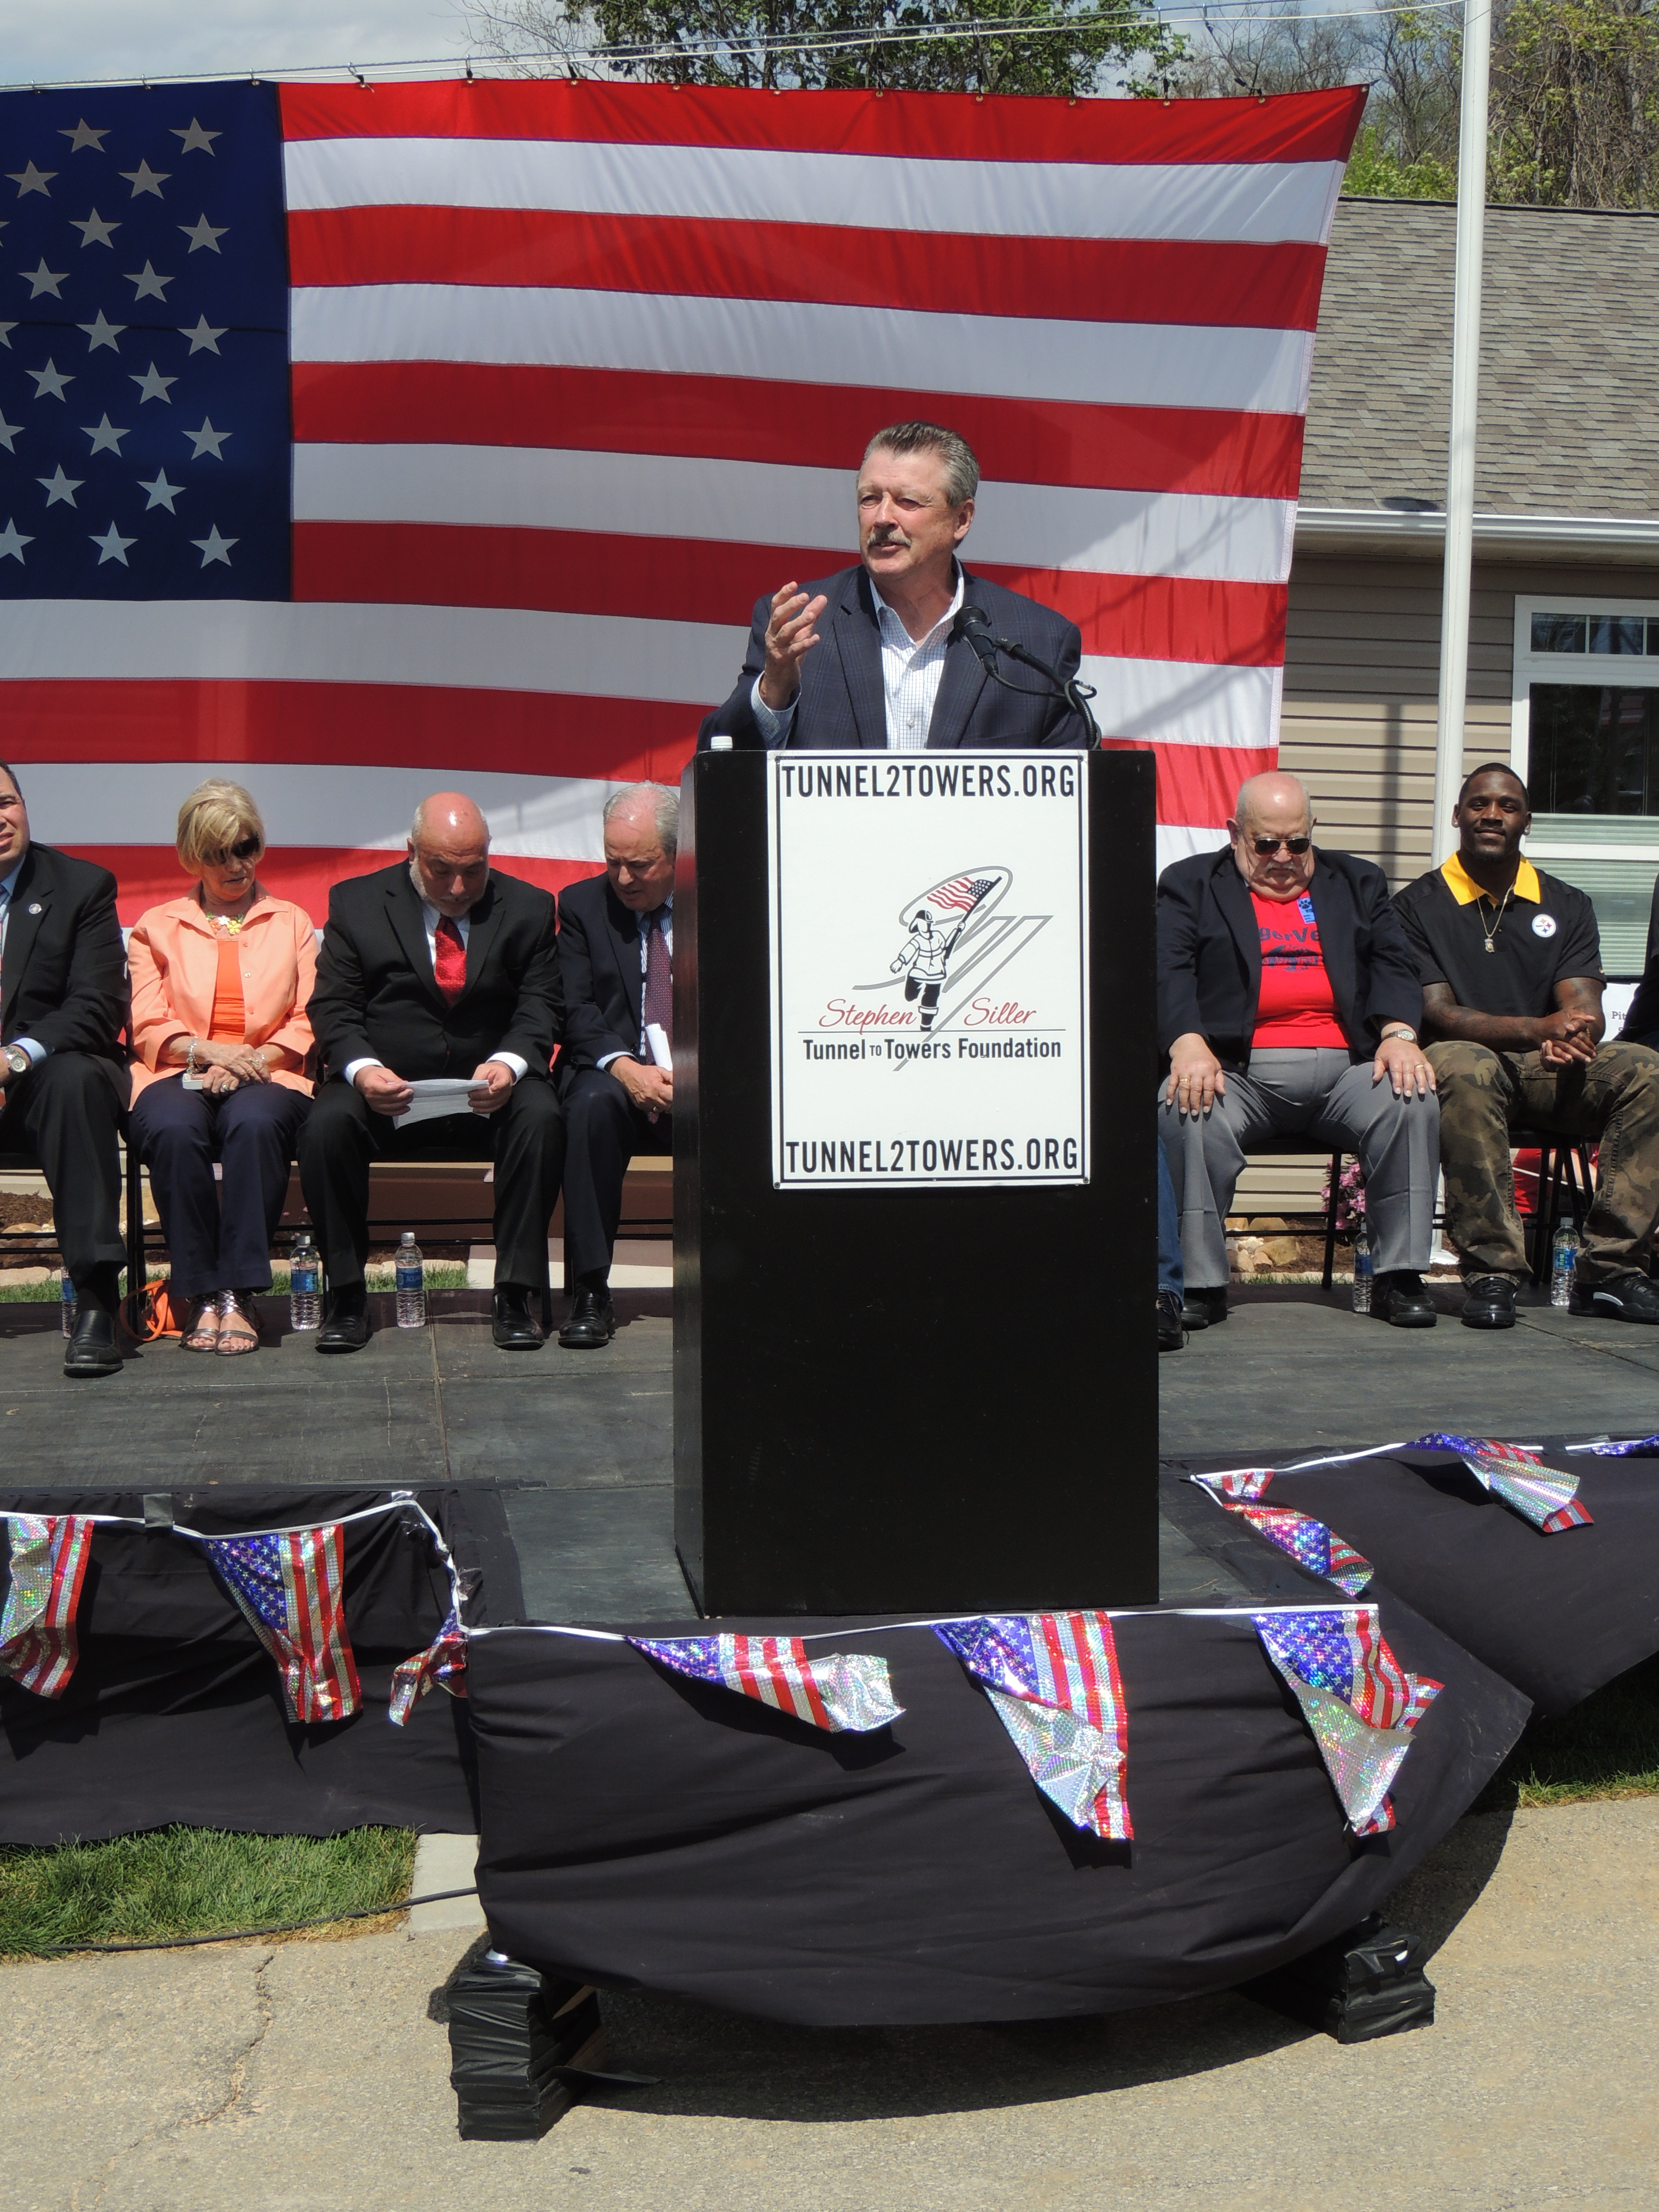 Senator Brewster Attends The Stephen Siller Tunnel to Towers Foundation Home Dedication to US Army SSG Michelle Satterfield :: April 25, 2016